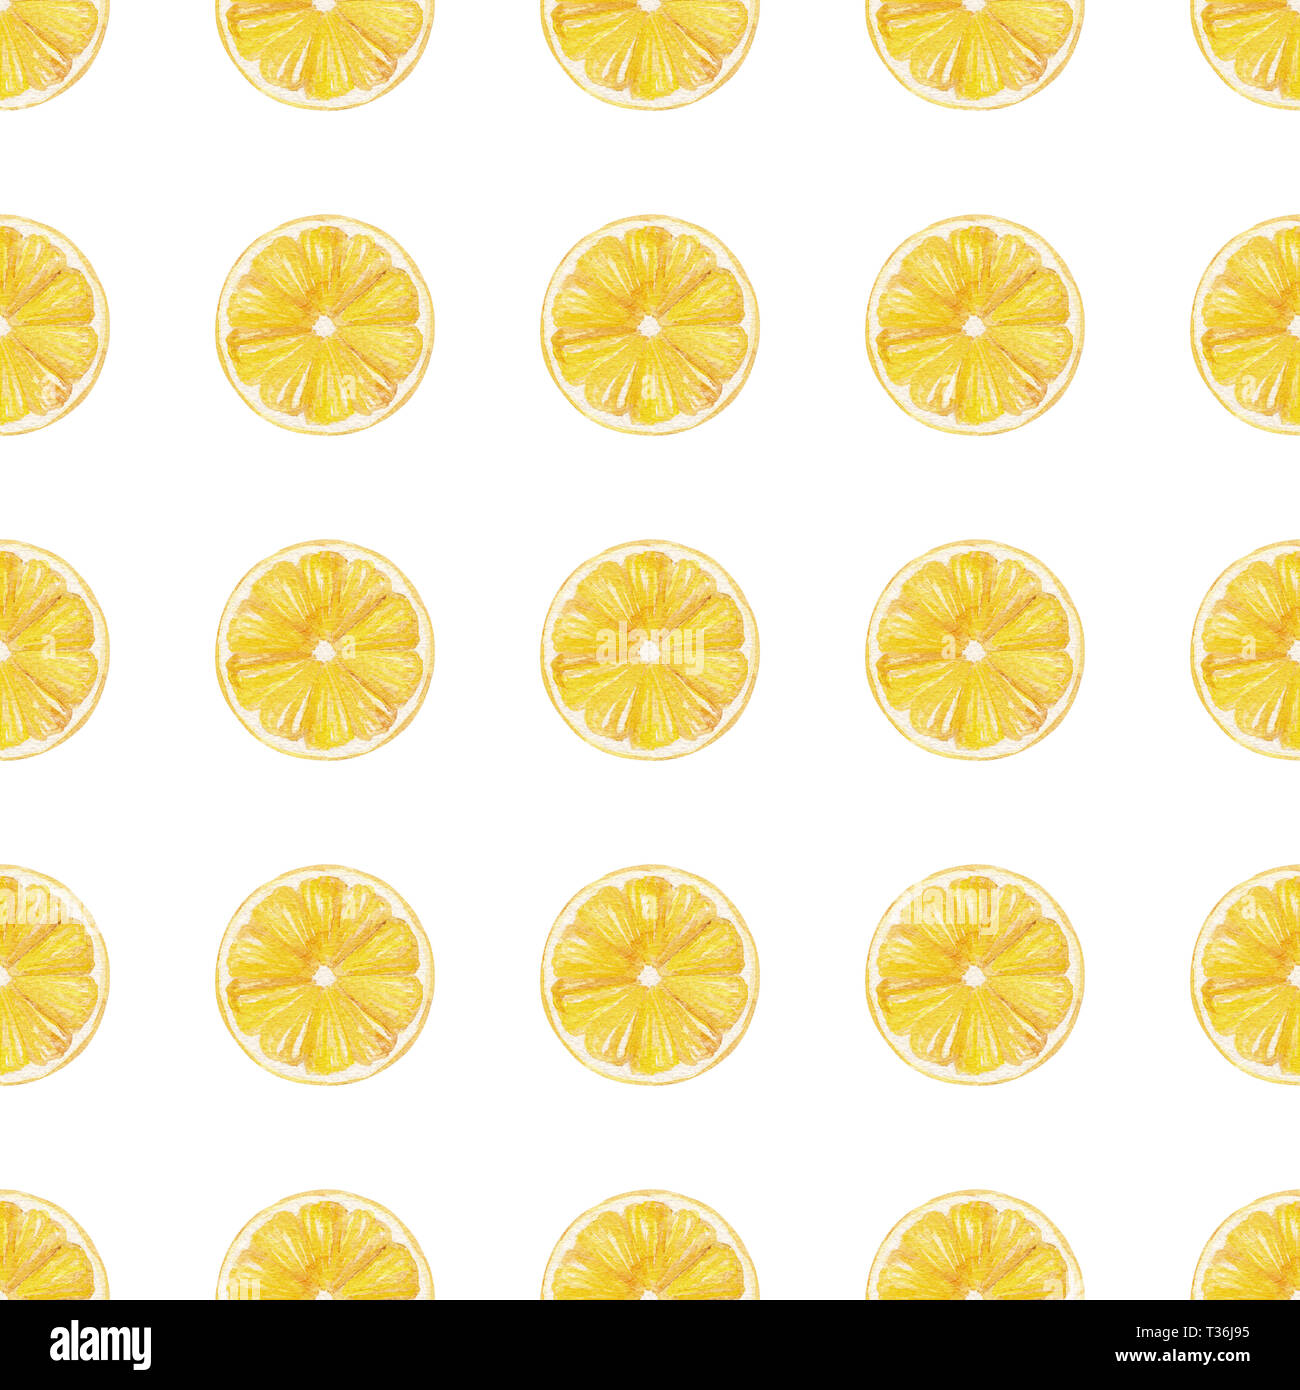 watercolor handmade seamless pattern with yellow lemon fruit slices perfect for printing on fabric and bag decoration wallpaper T36J95